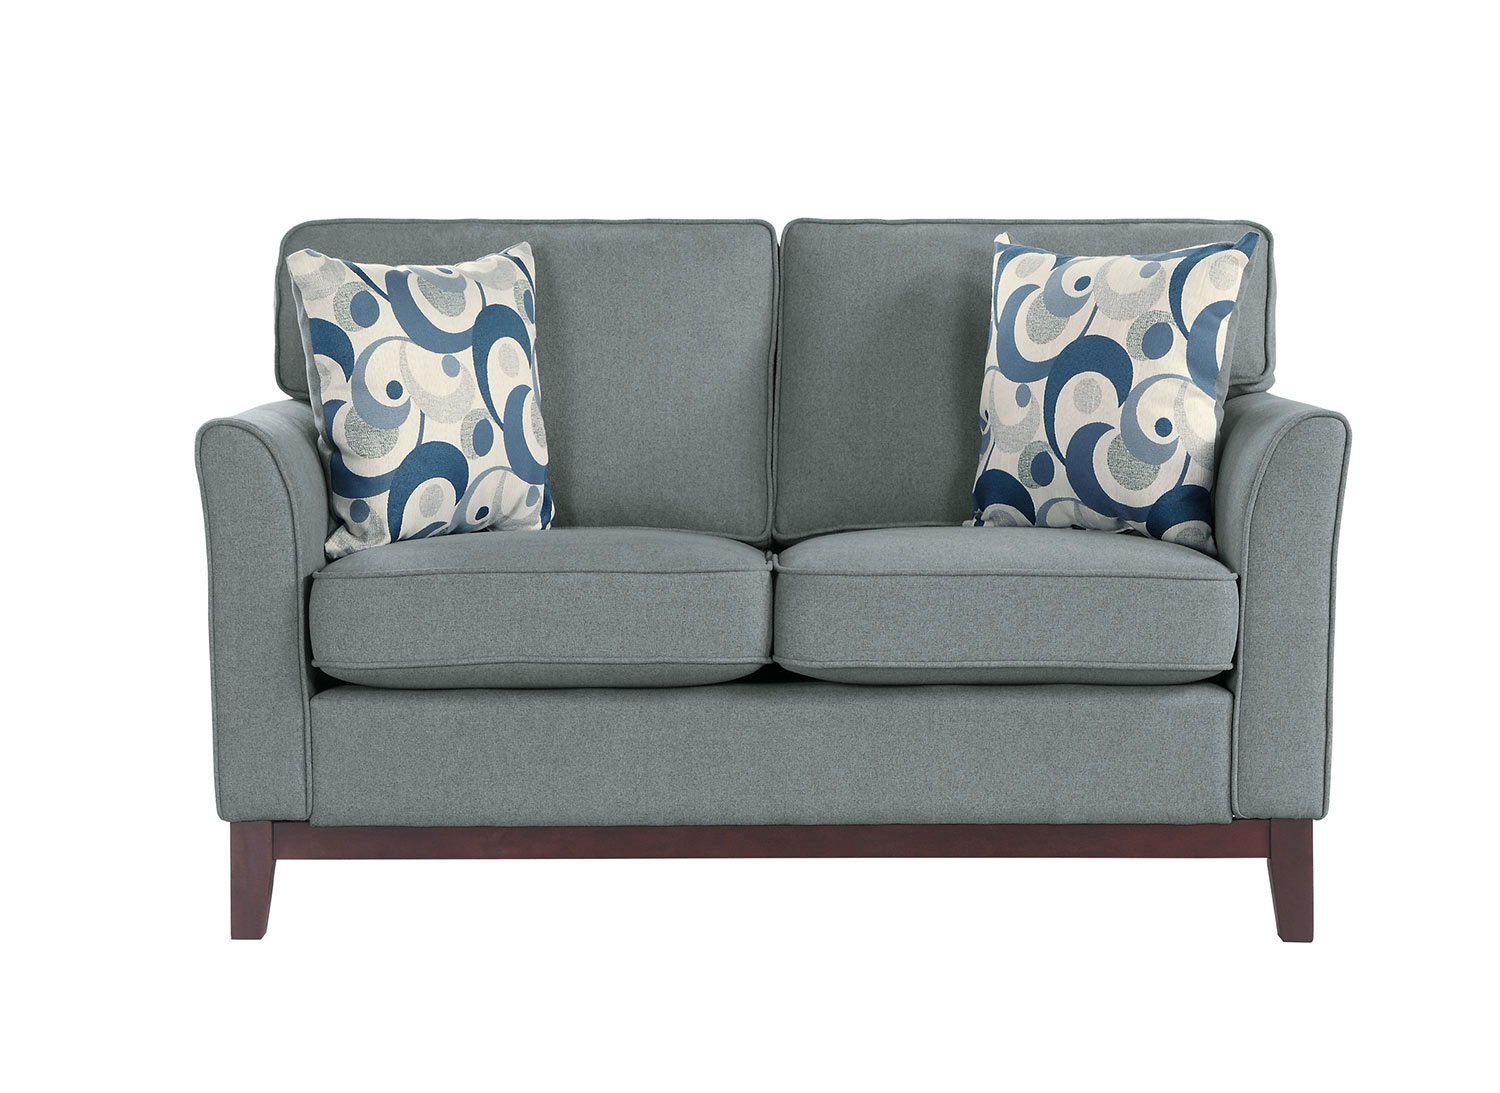 Homelegance Blue Lake Love Seat - Gray